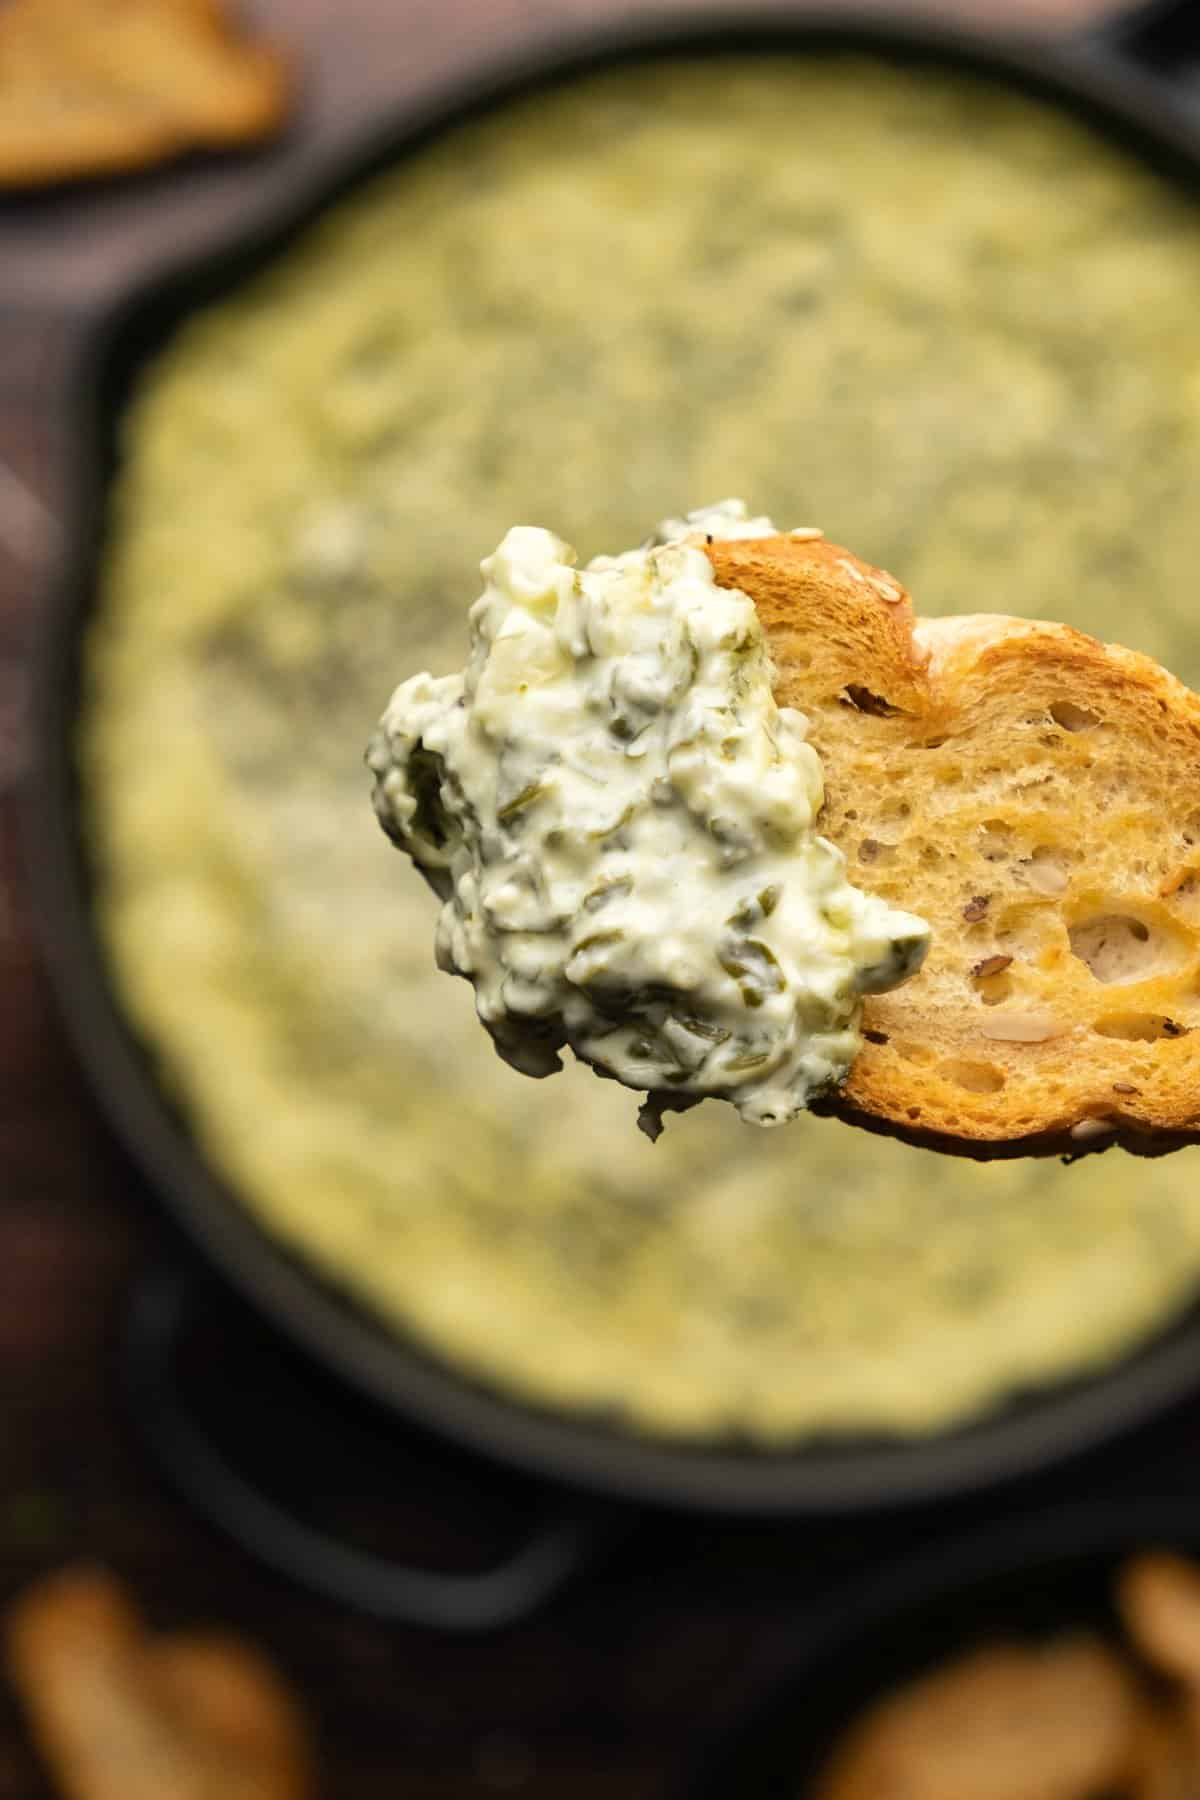 A toasted baguette dipped into baked spinach dip.